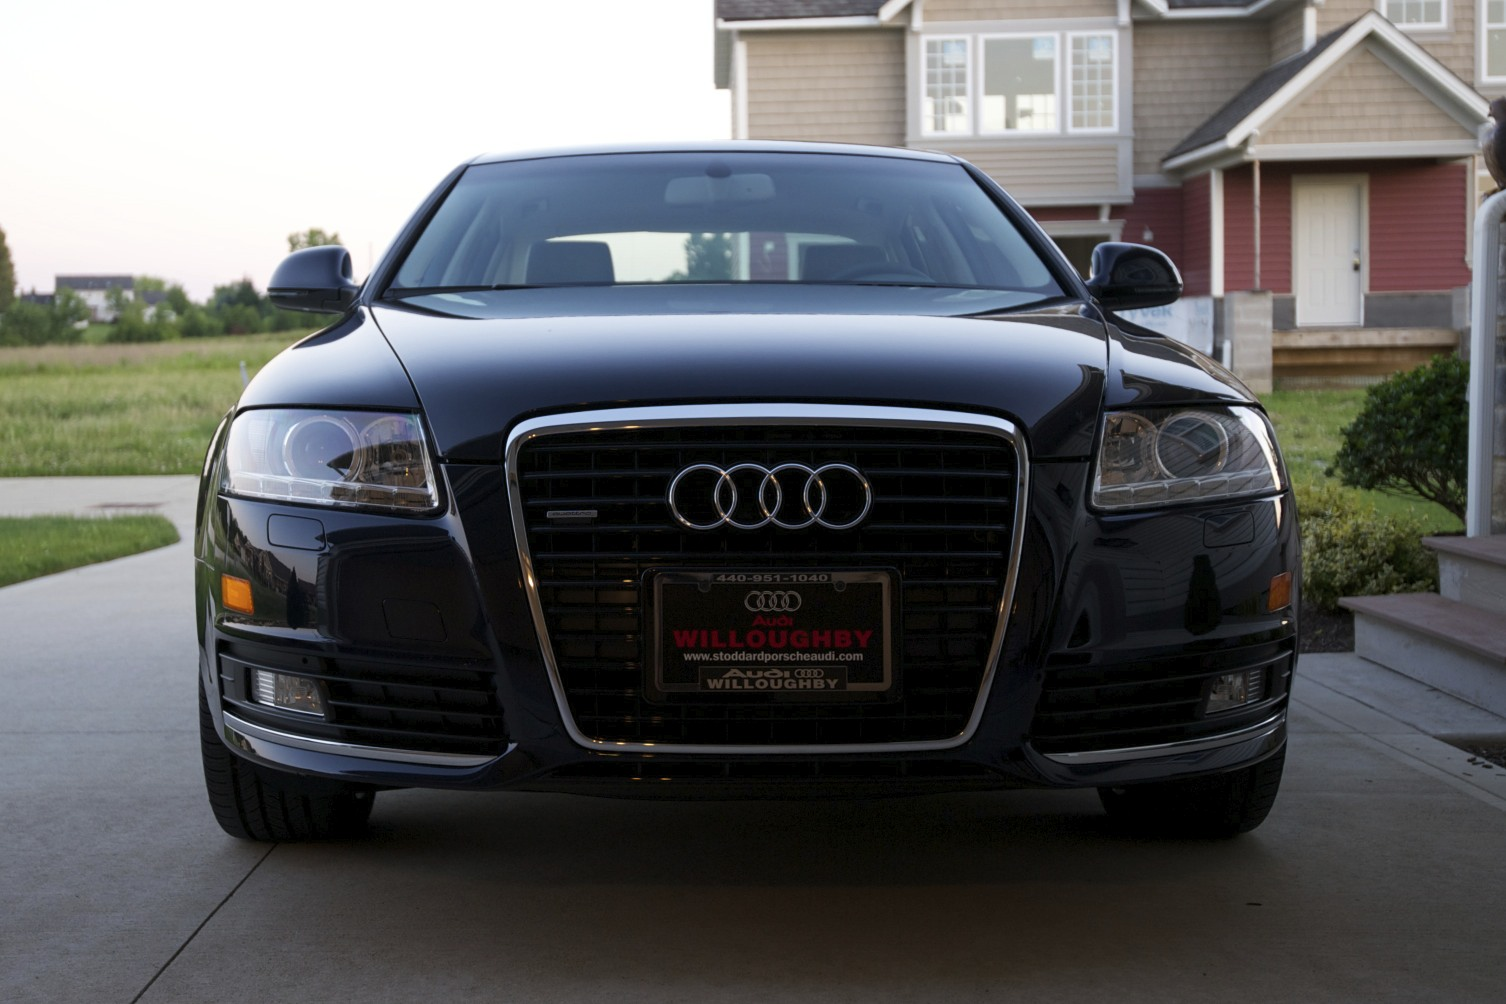 hight resolution of 2010 audi a6 3 0t stasis 1 4 mile drag racing trap speed 0 60